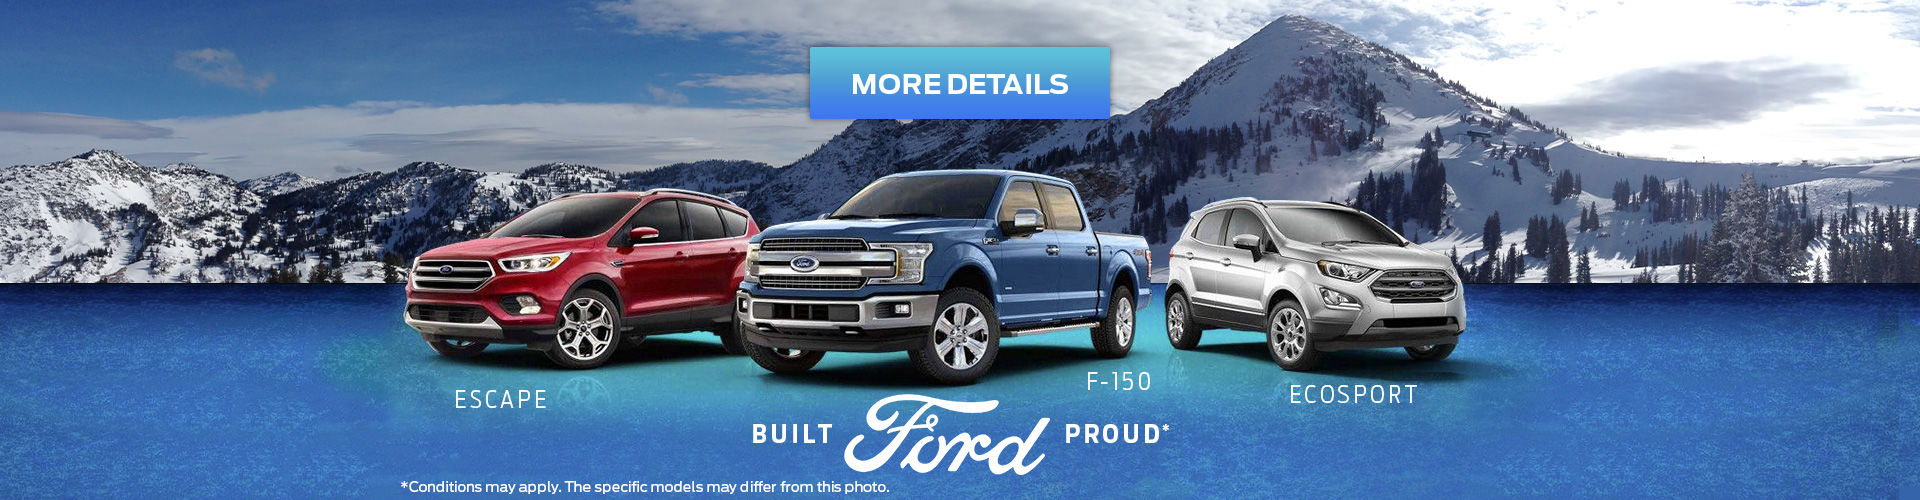 Ford Event!